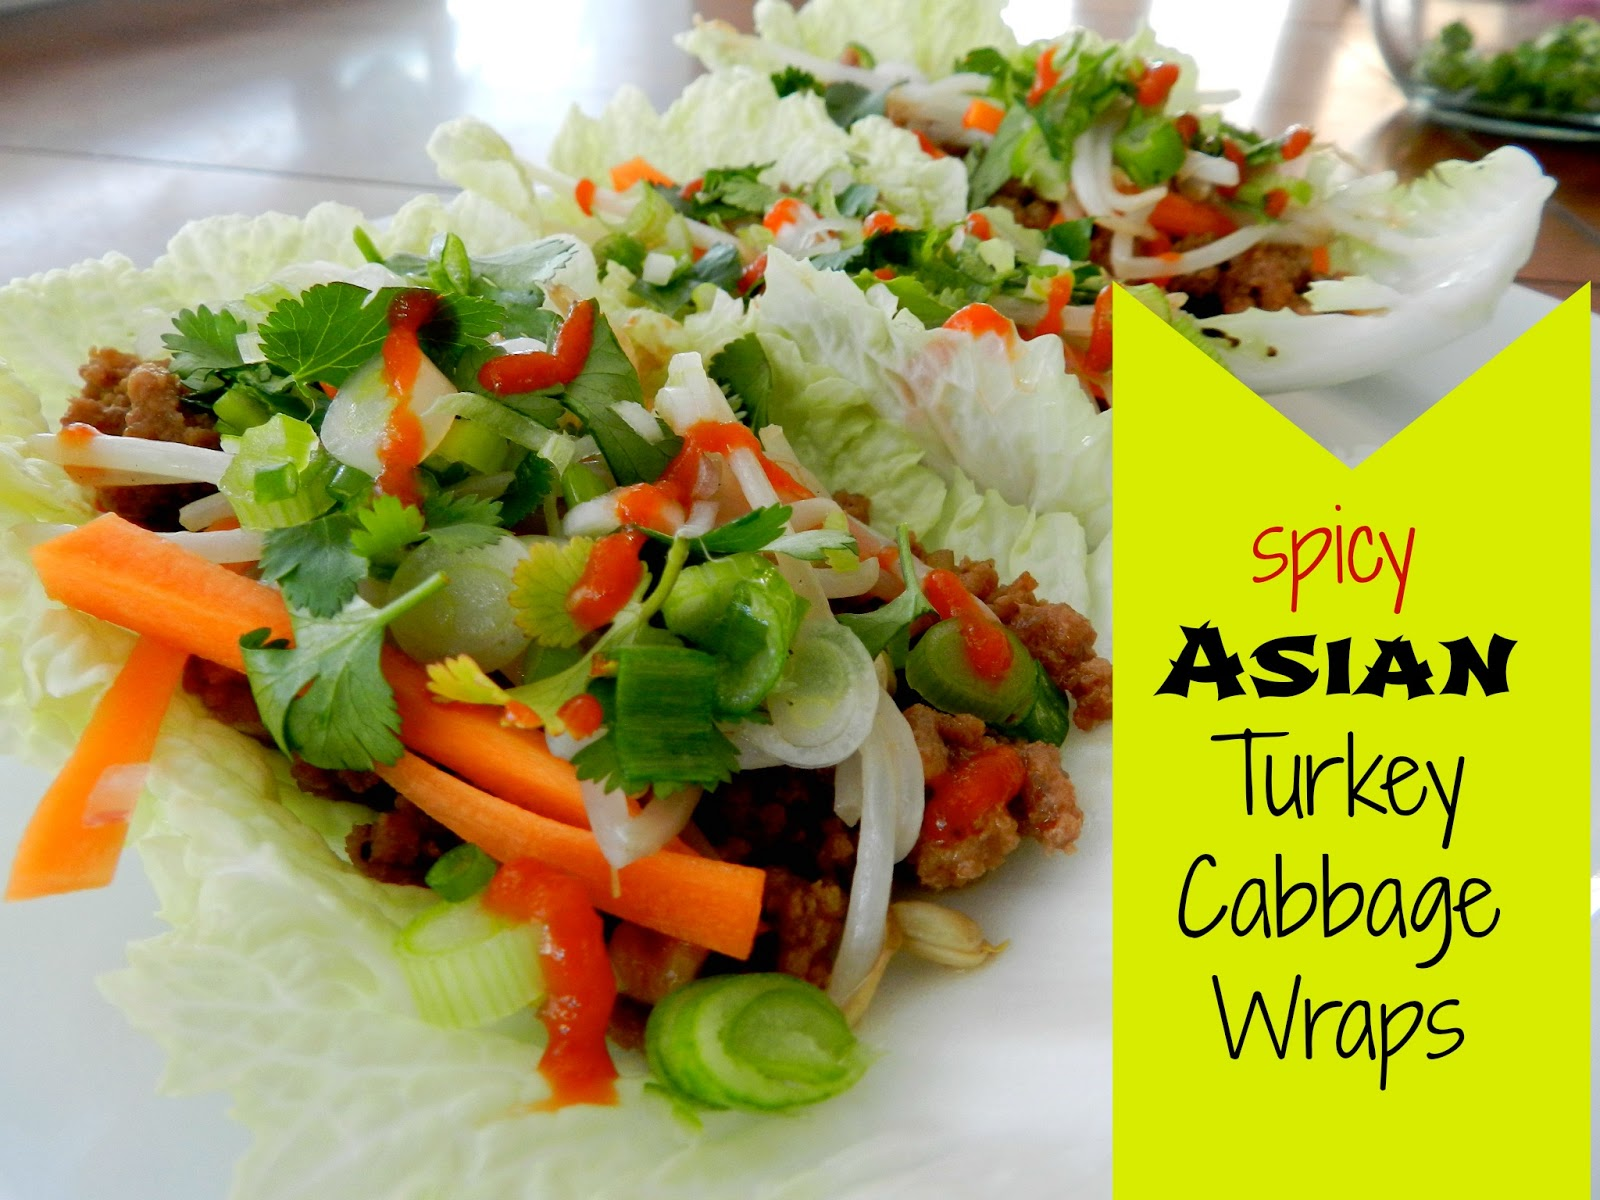 Make it Monday [Spicy Asian Turkey Cabbage Wraps]